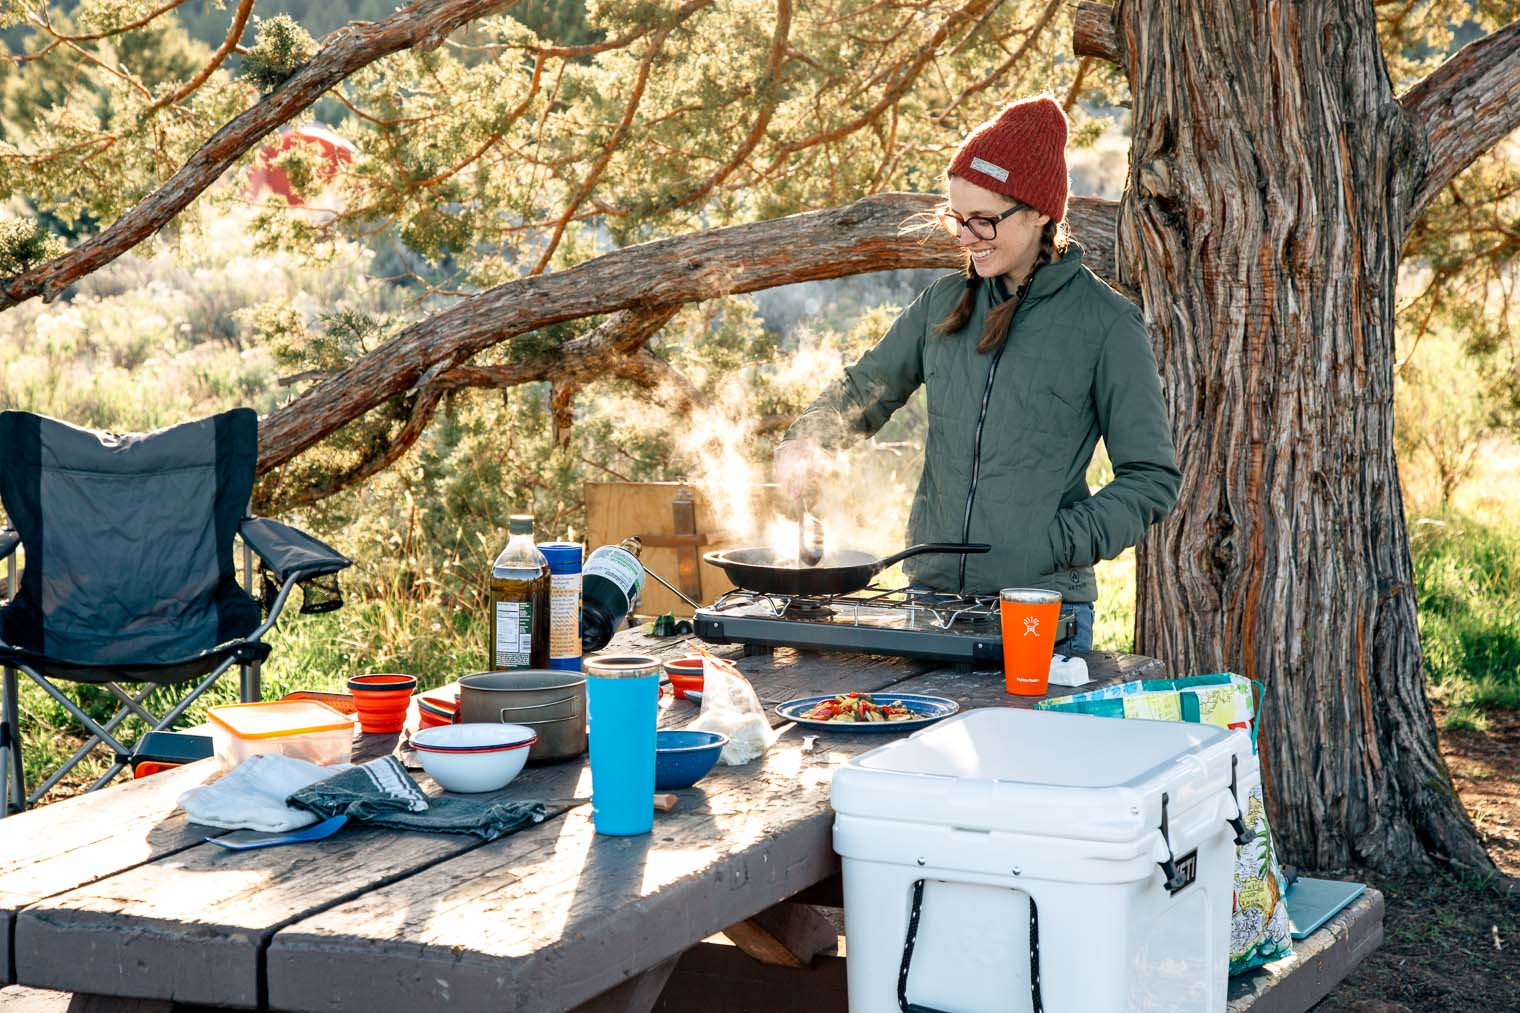 camping kitchen essentials what gear you need to cook while car camping this camp - Camping Kitchen